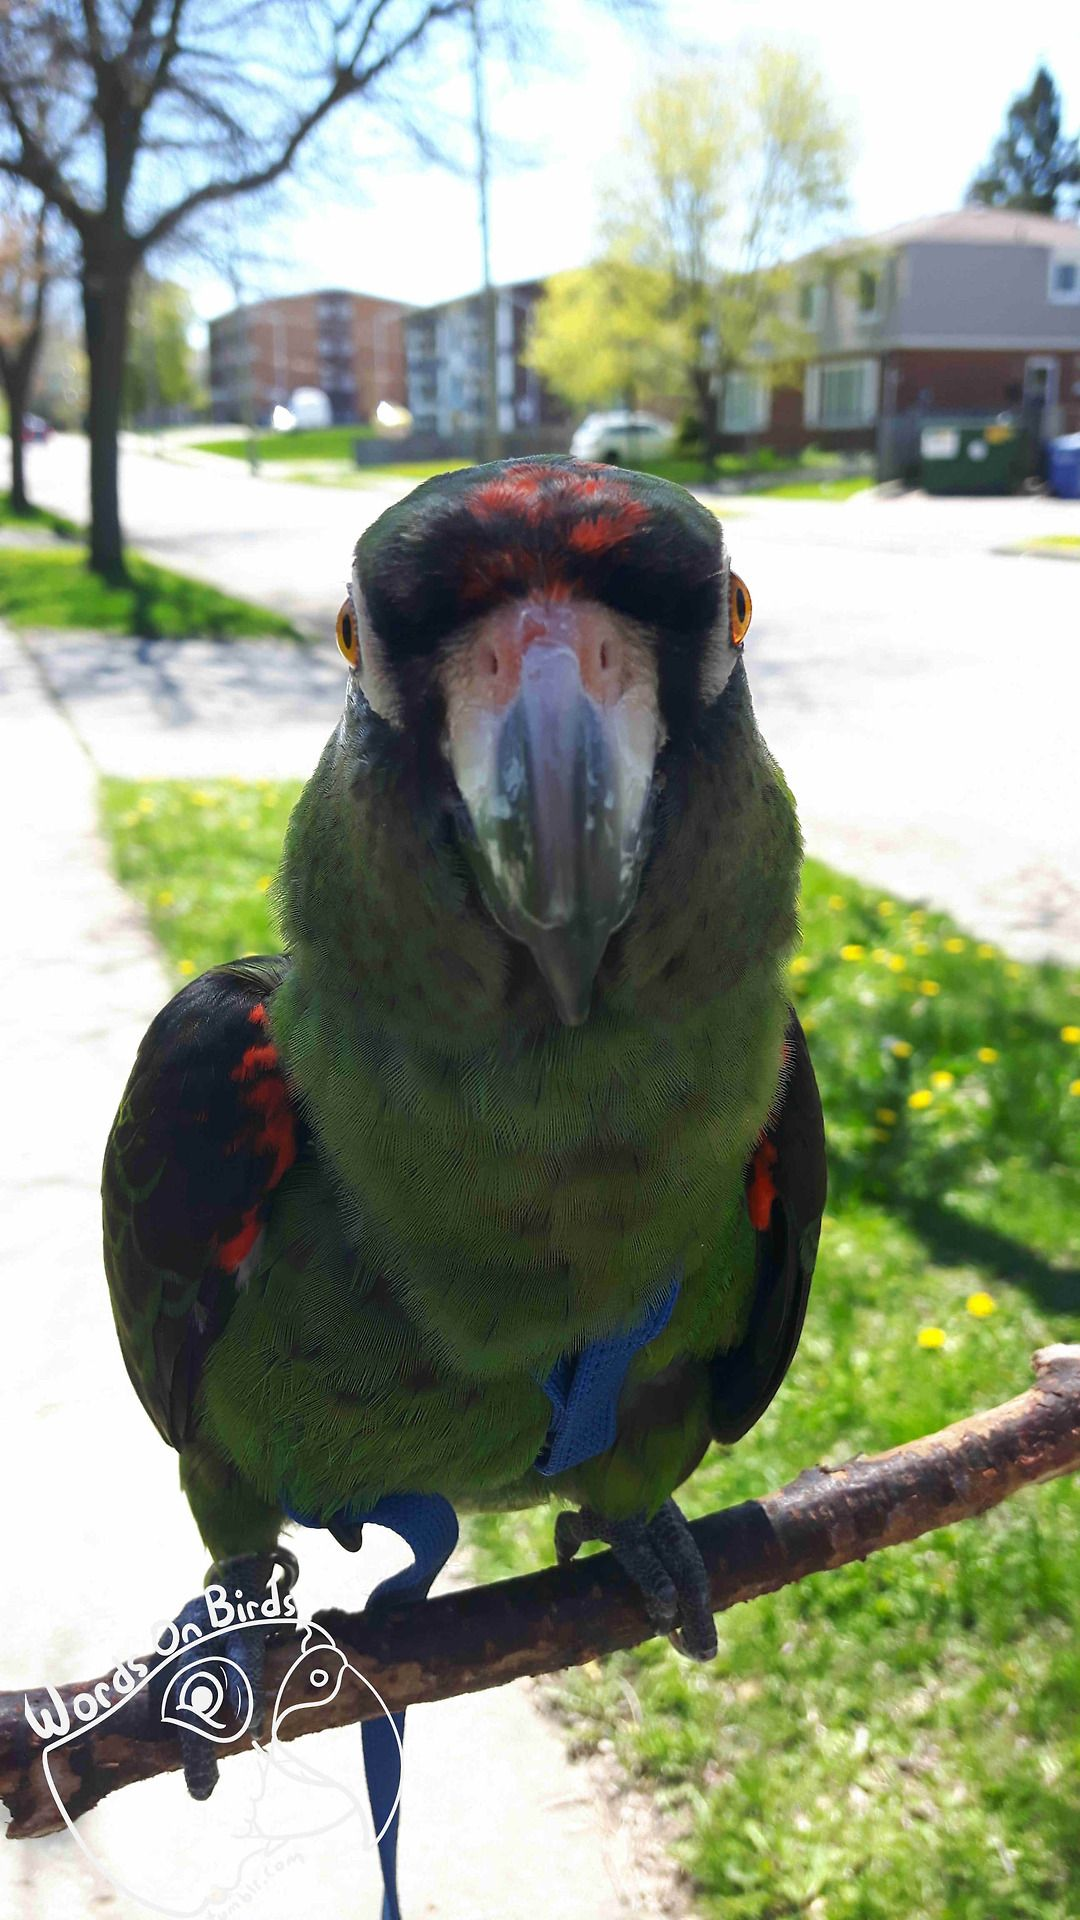 Image Dax The Jardines Parrot Staring Directly At The Camera He